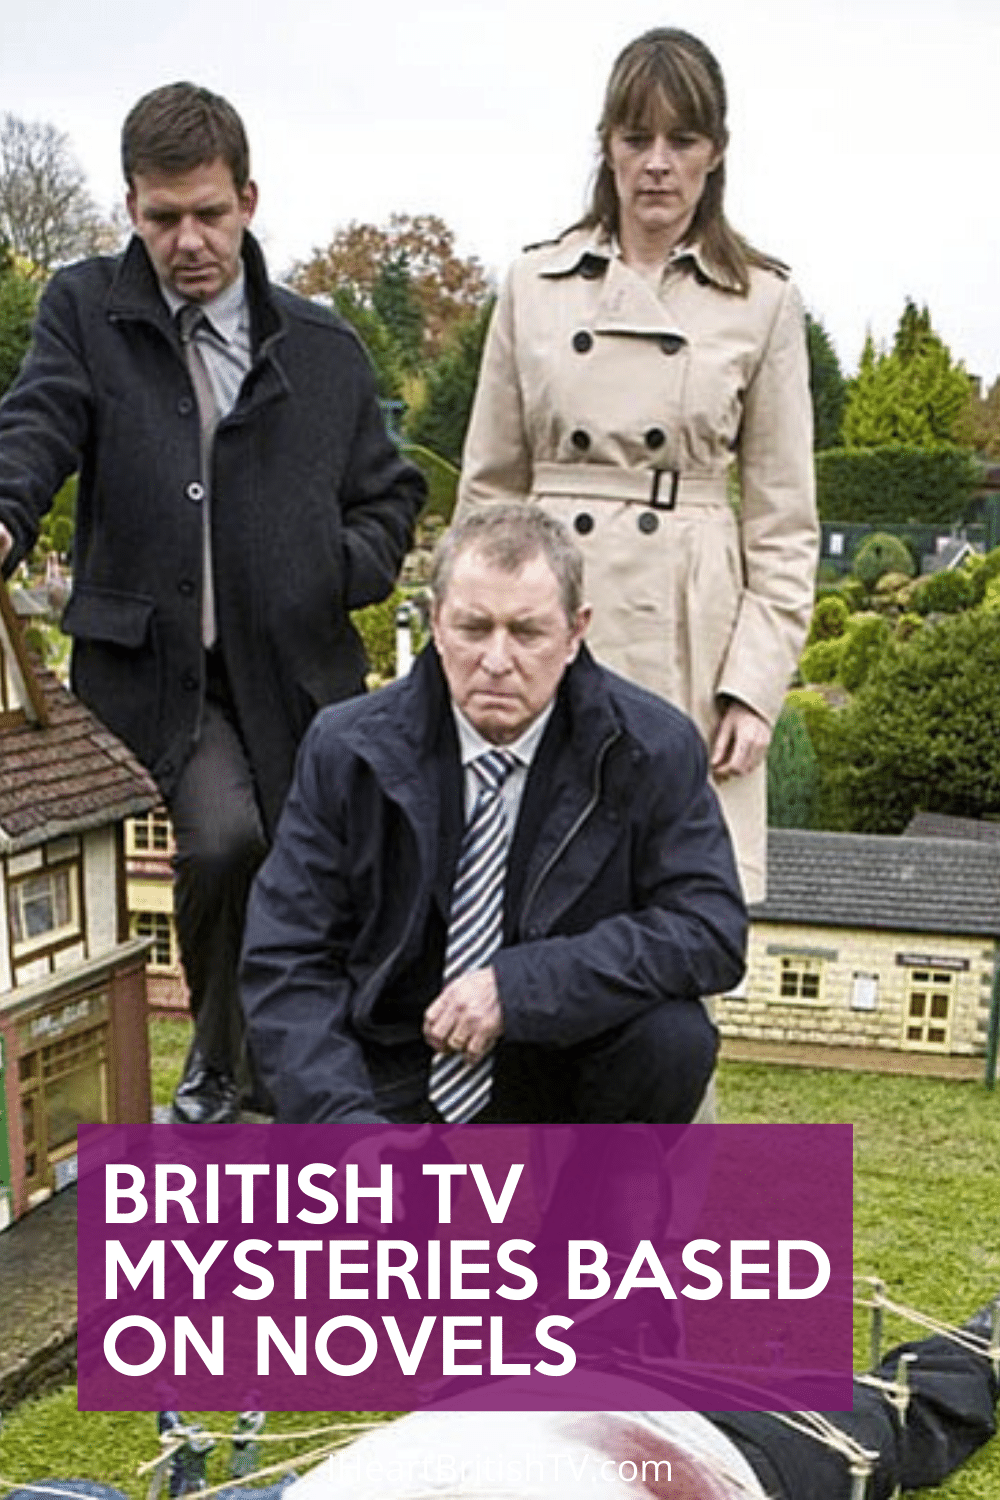 5 More Great British Mystery Shows Based on Novels 7